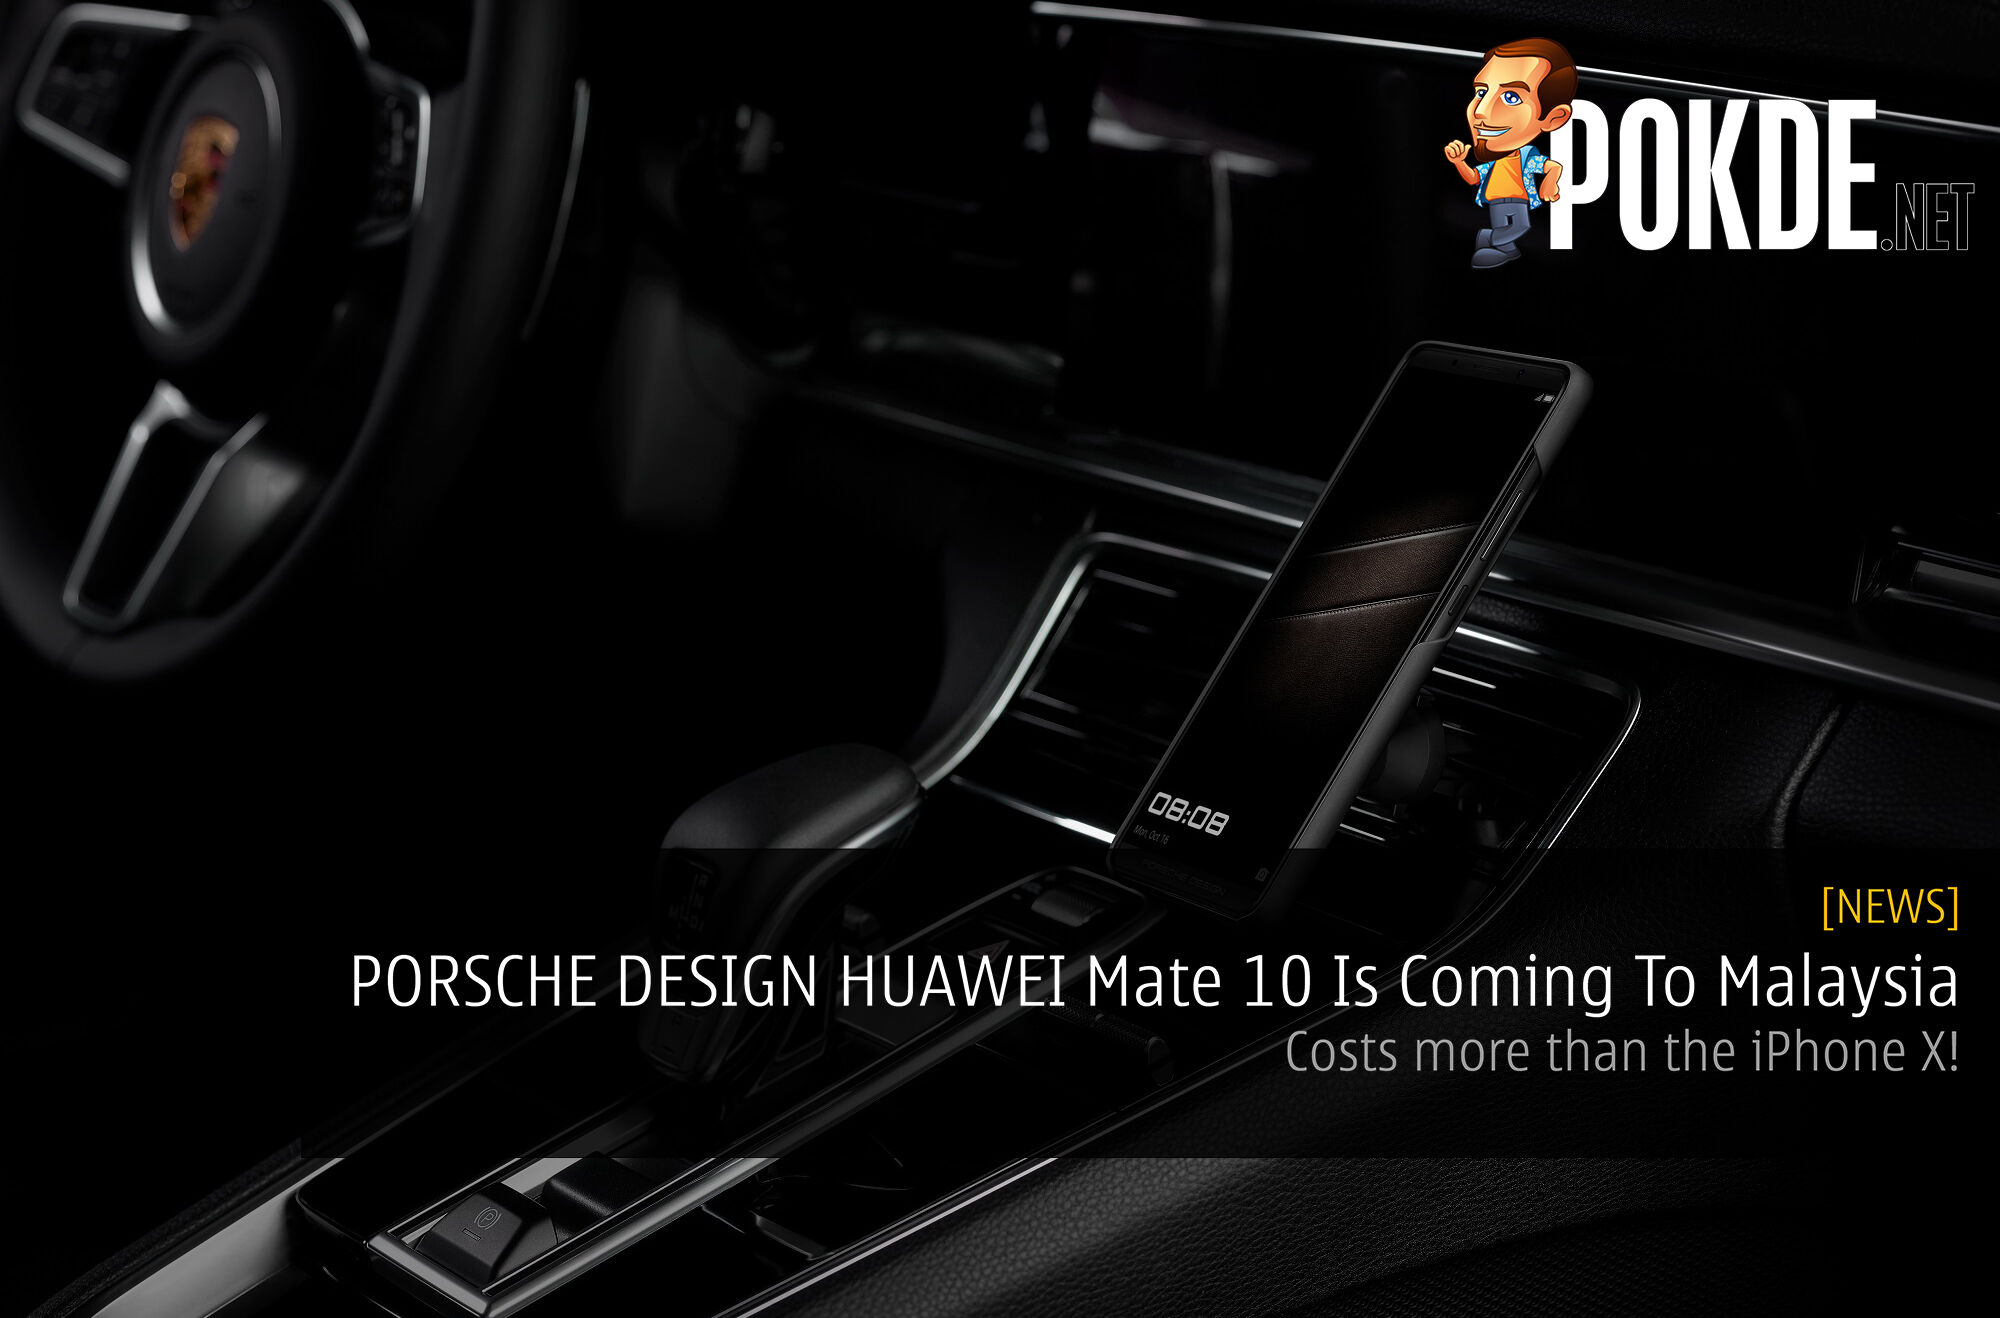 PORSCHE DESIGN HUAWEI Mate 10 Is Coming To Malaysia - Costs more than the iPhone X! 22